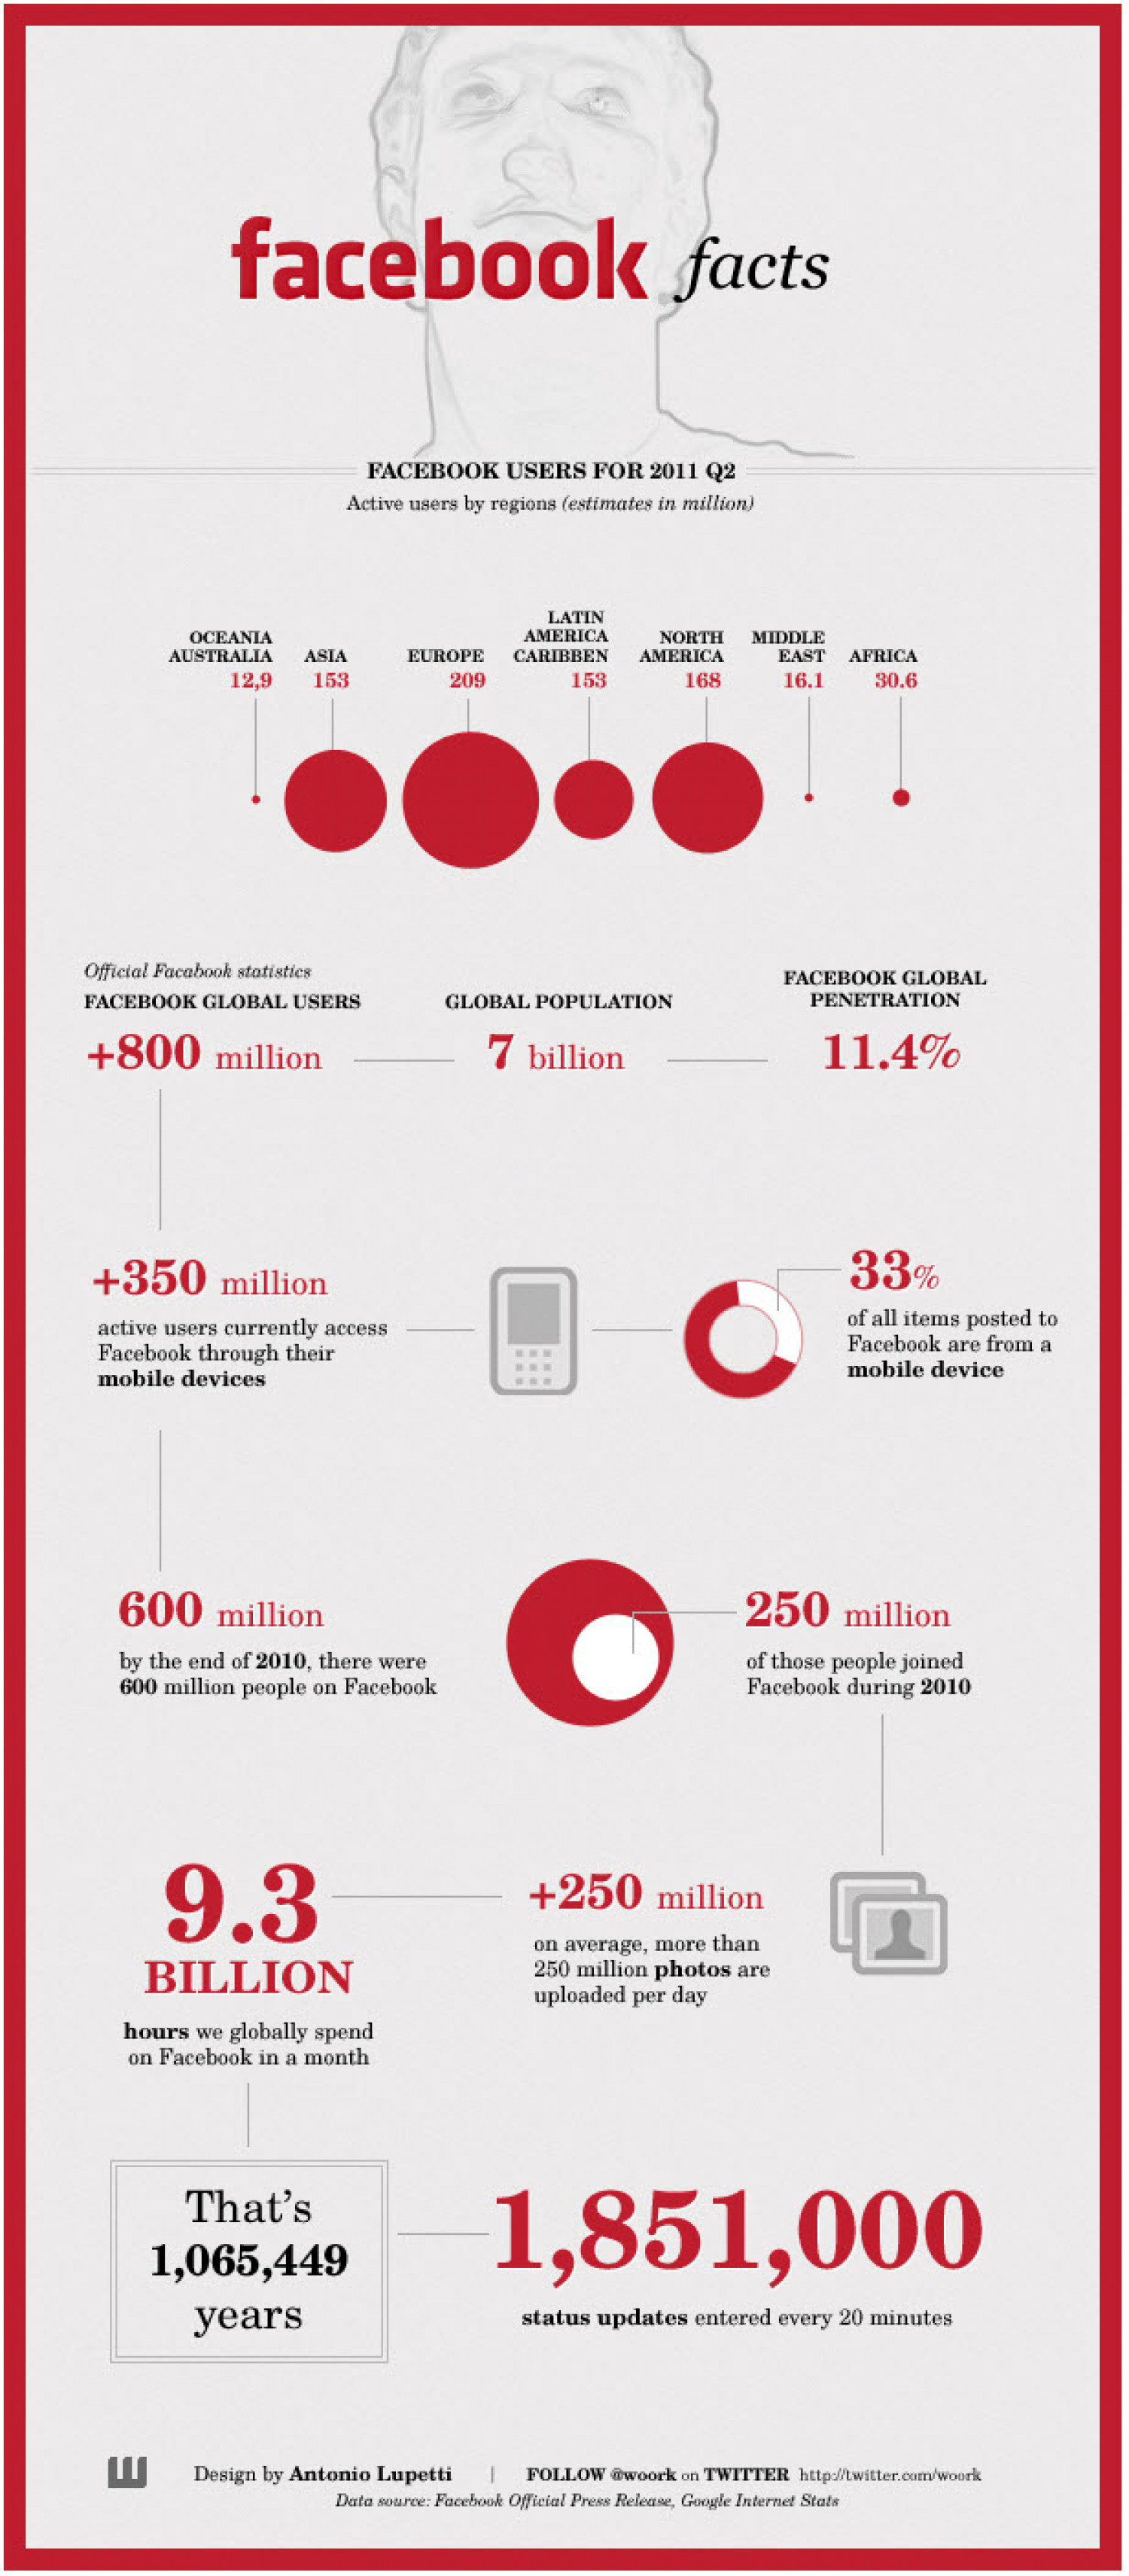 Facebook Facts Infographic